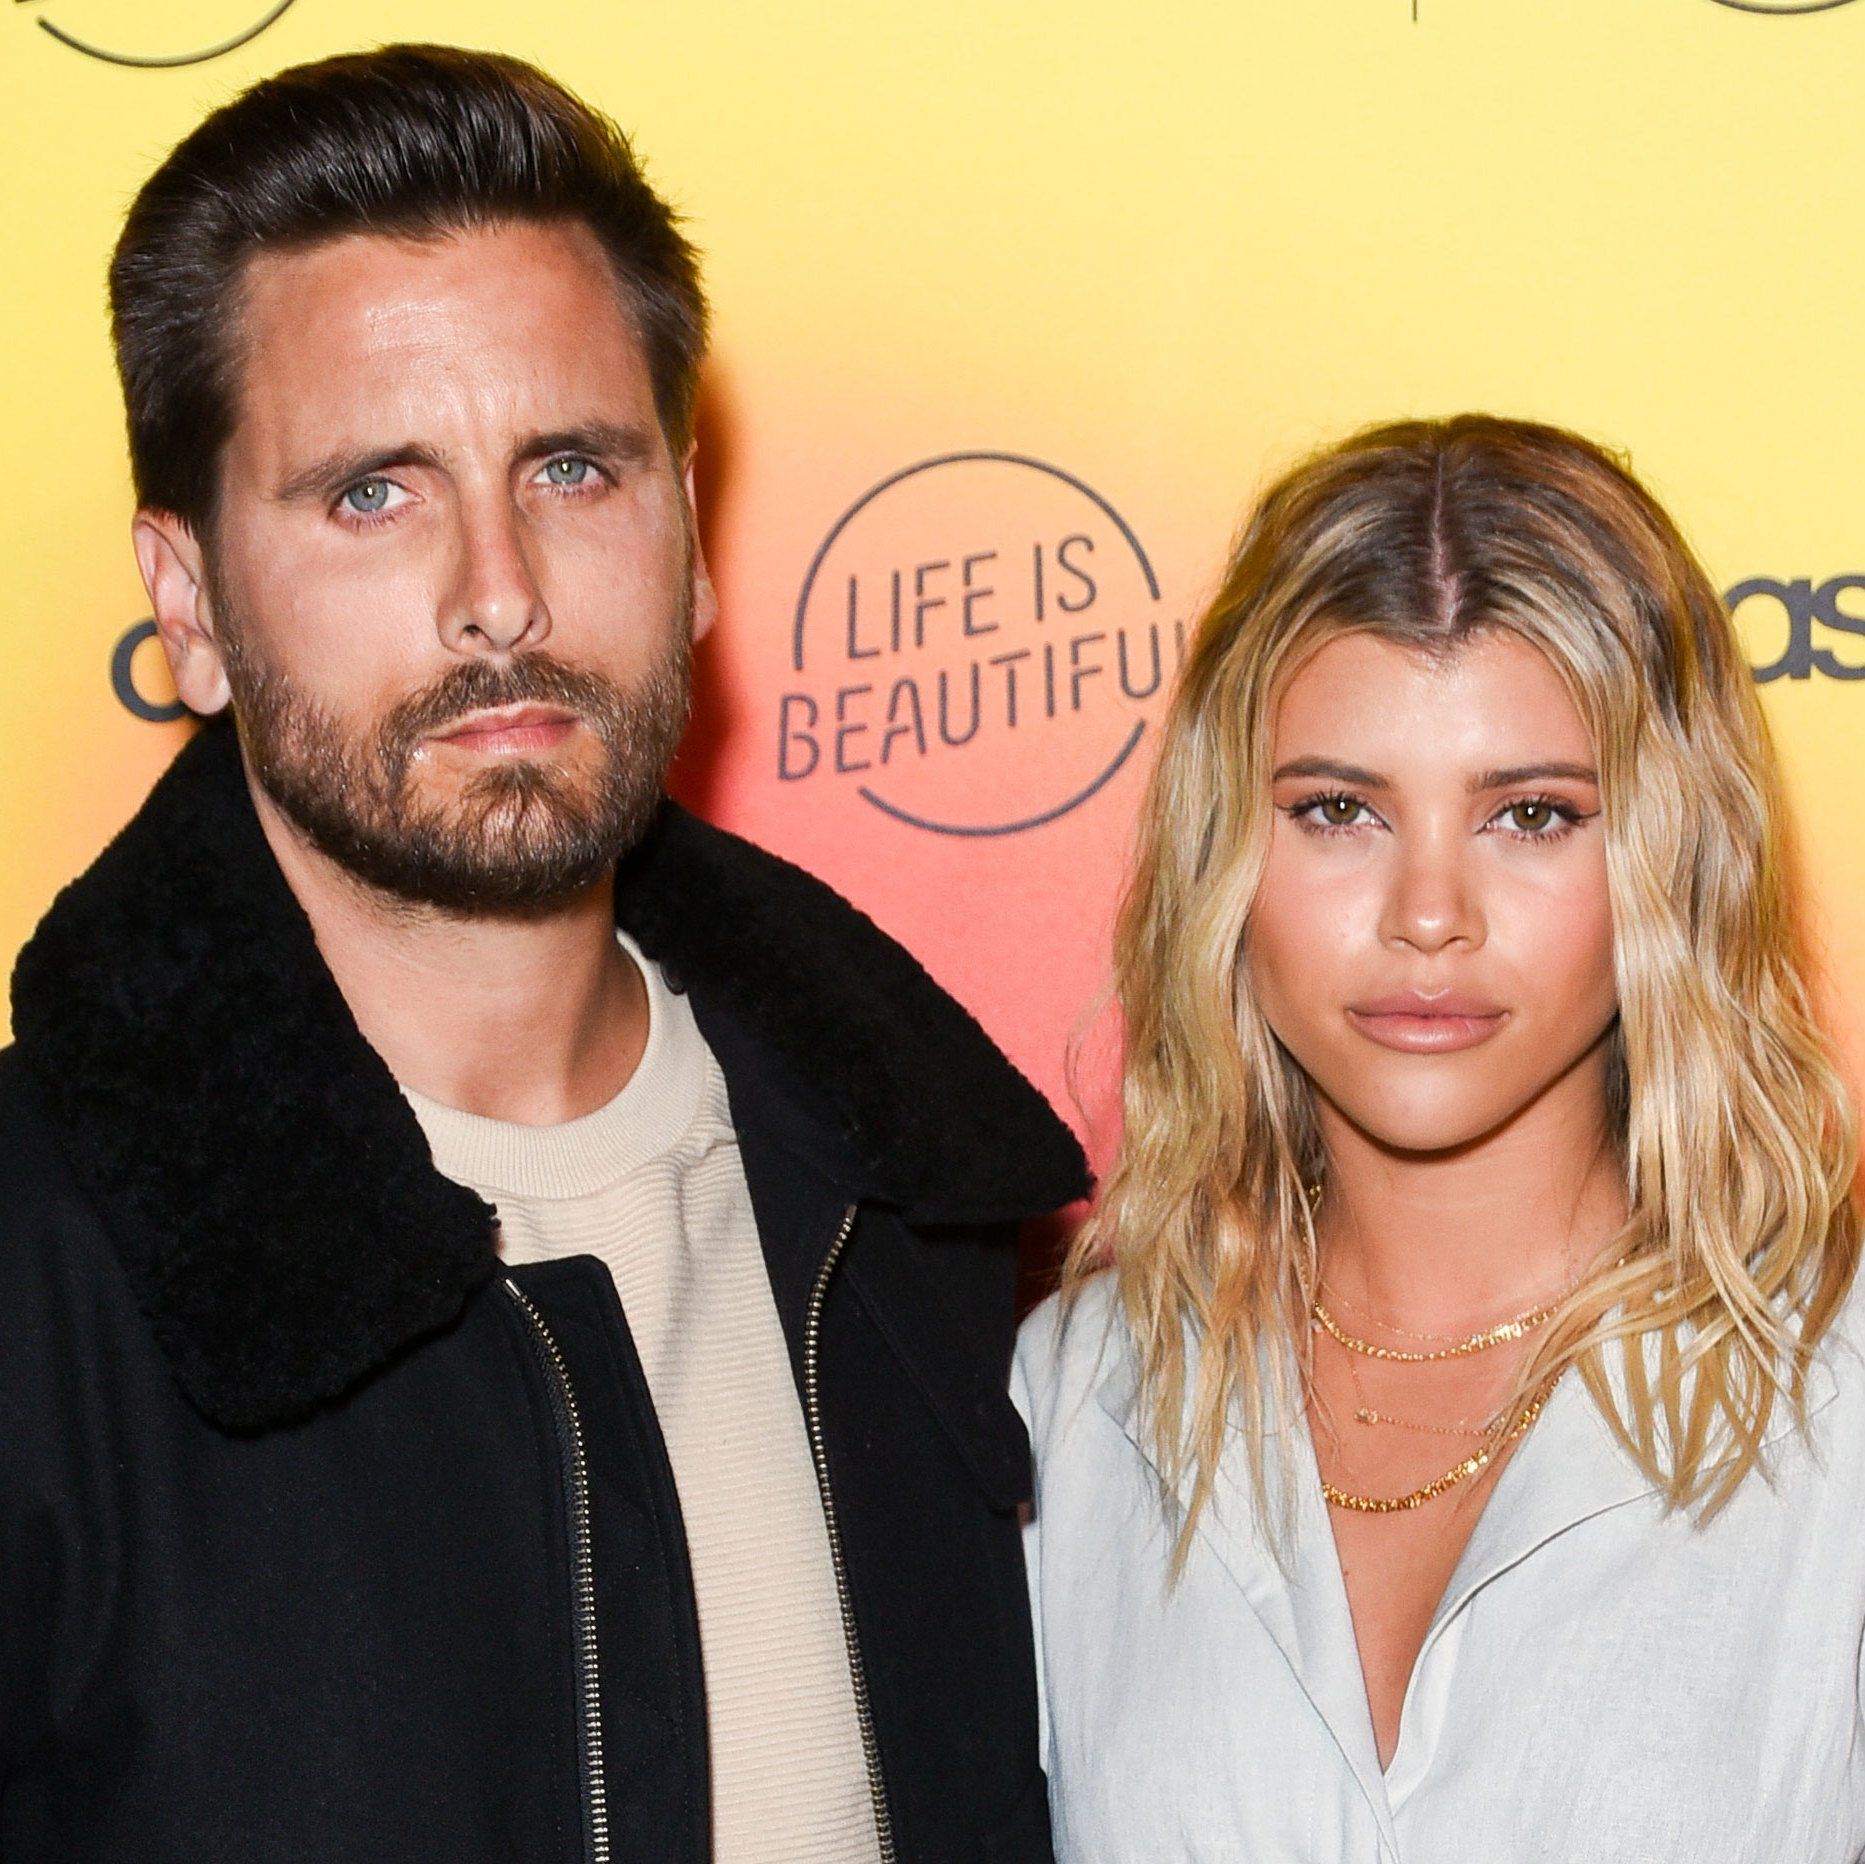 Scott Disick and Girlfriend Sofia Richie Have Some NSFW Fun on Instagram